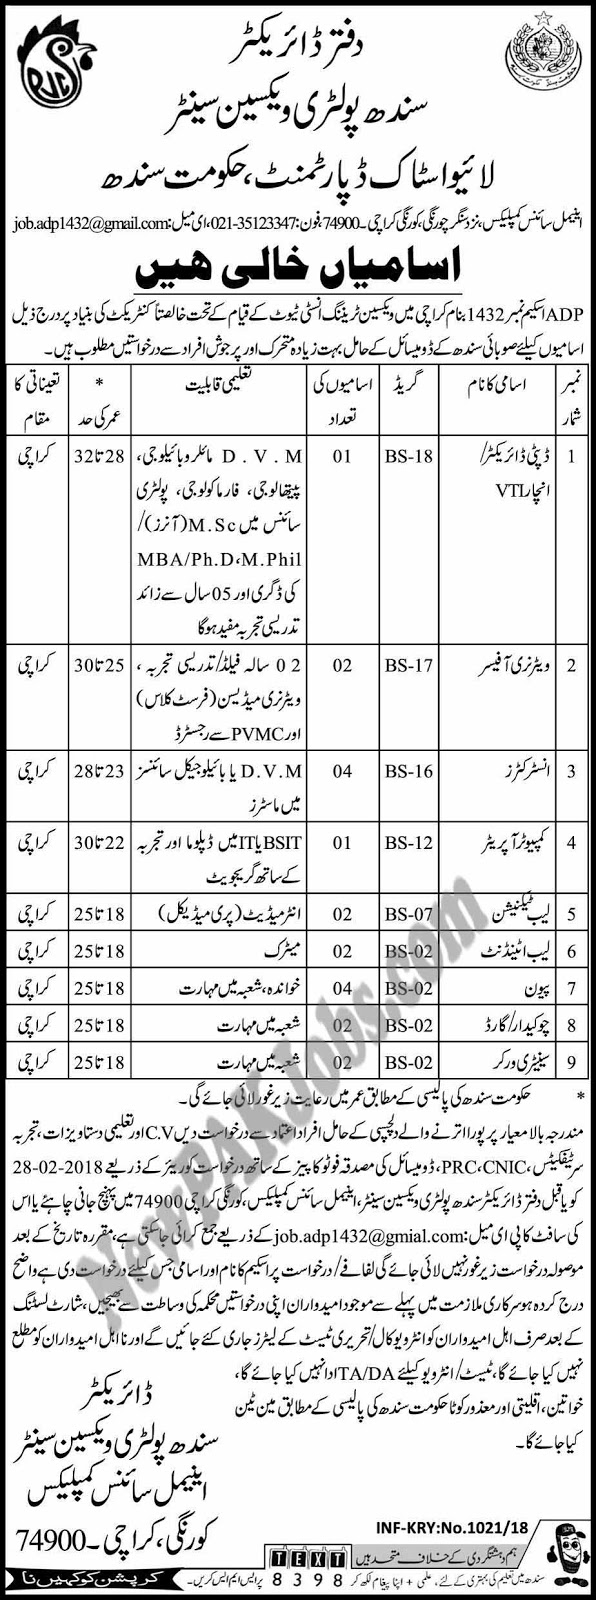 Today Fresh Jobs 2018 in Sindh under Live Stock Department Govt of Sindh